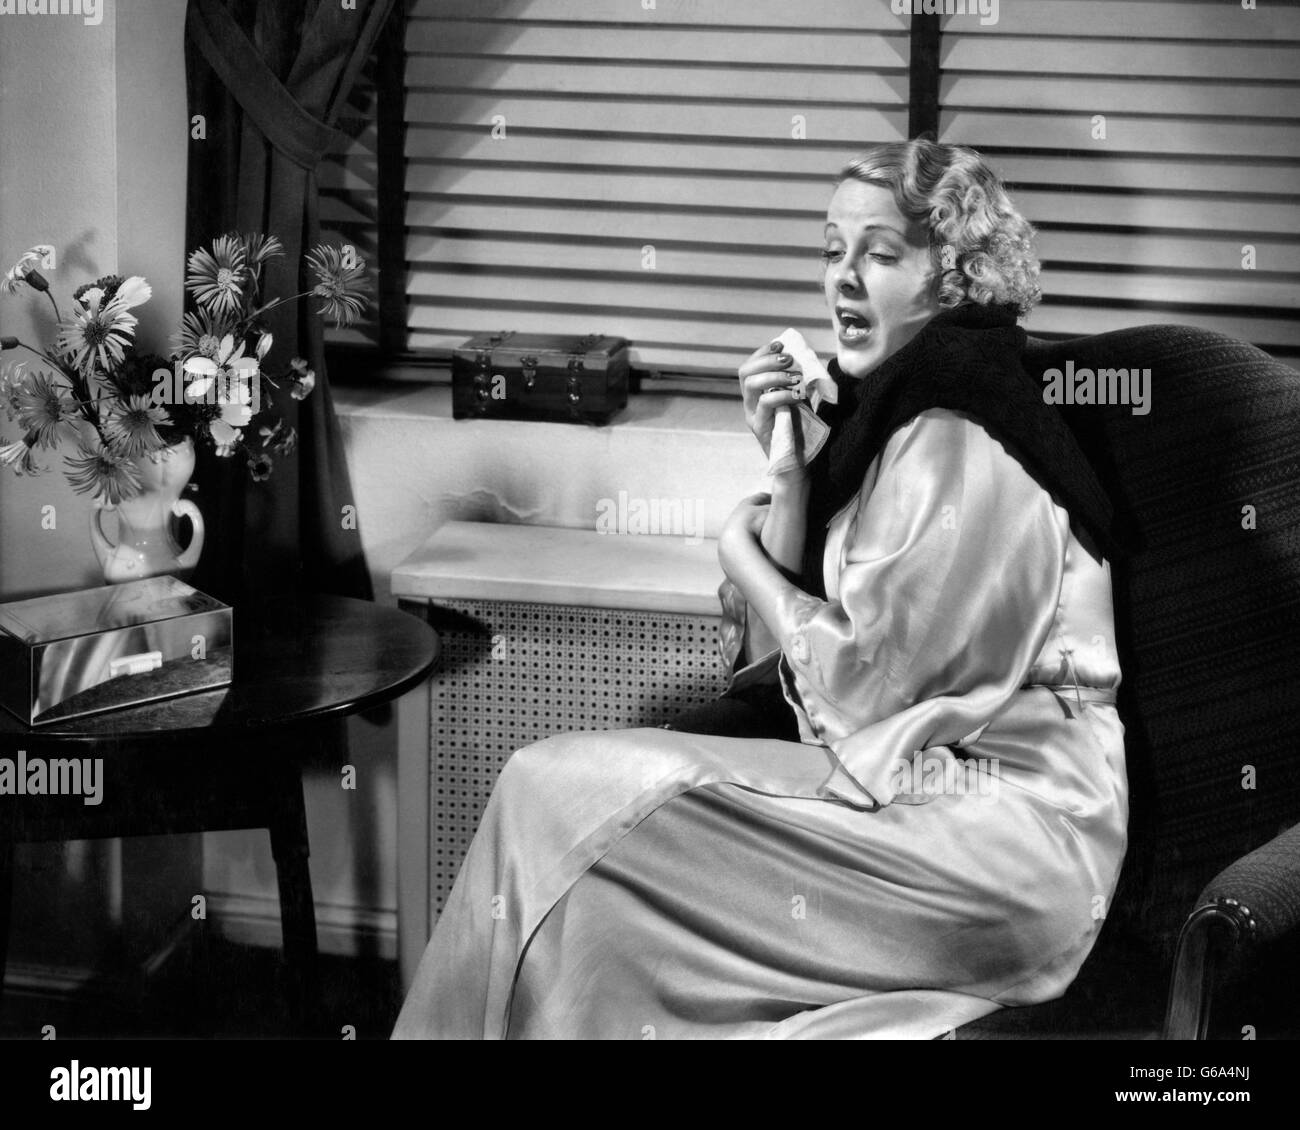 1930s WOMAN SNEEZING COUGHING WITH COLD SITTING NEXT TO RADIATOR FOR HEAT WARMTH - Stock Image